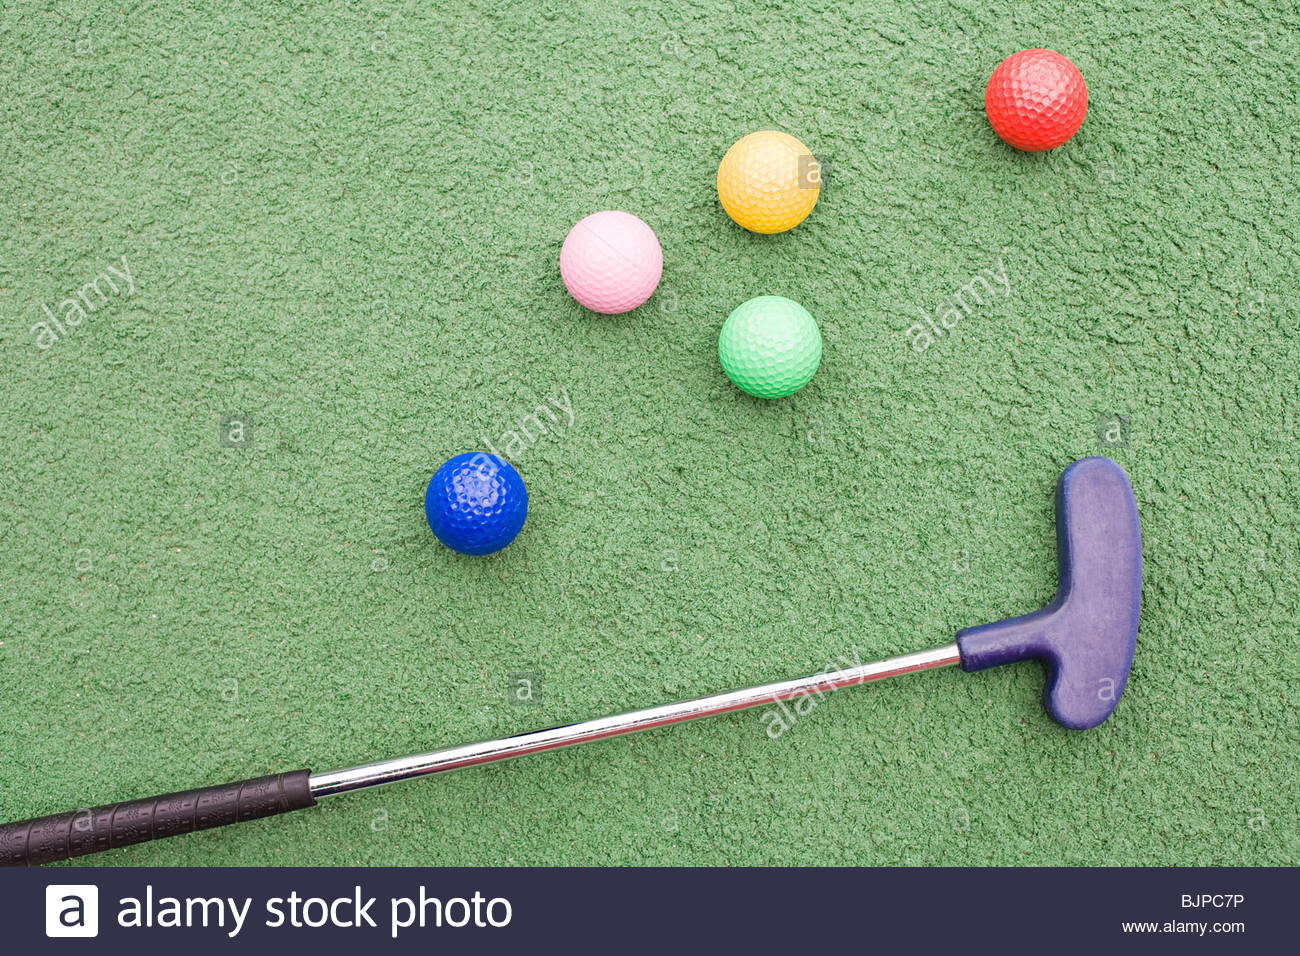 Golf club and golf balls - Stock Image